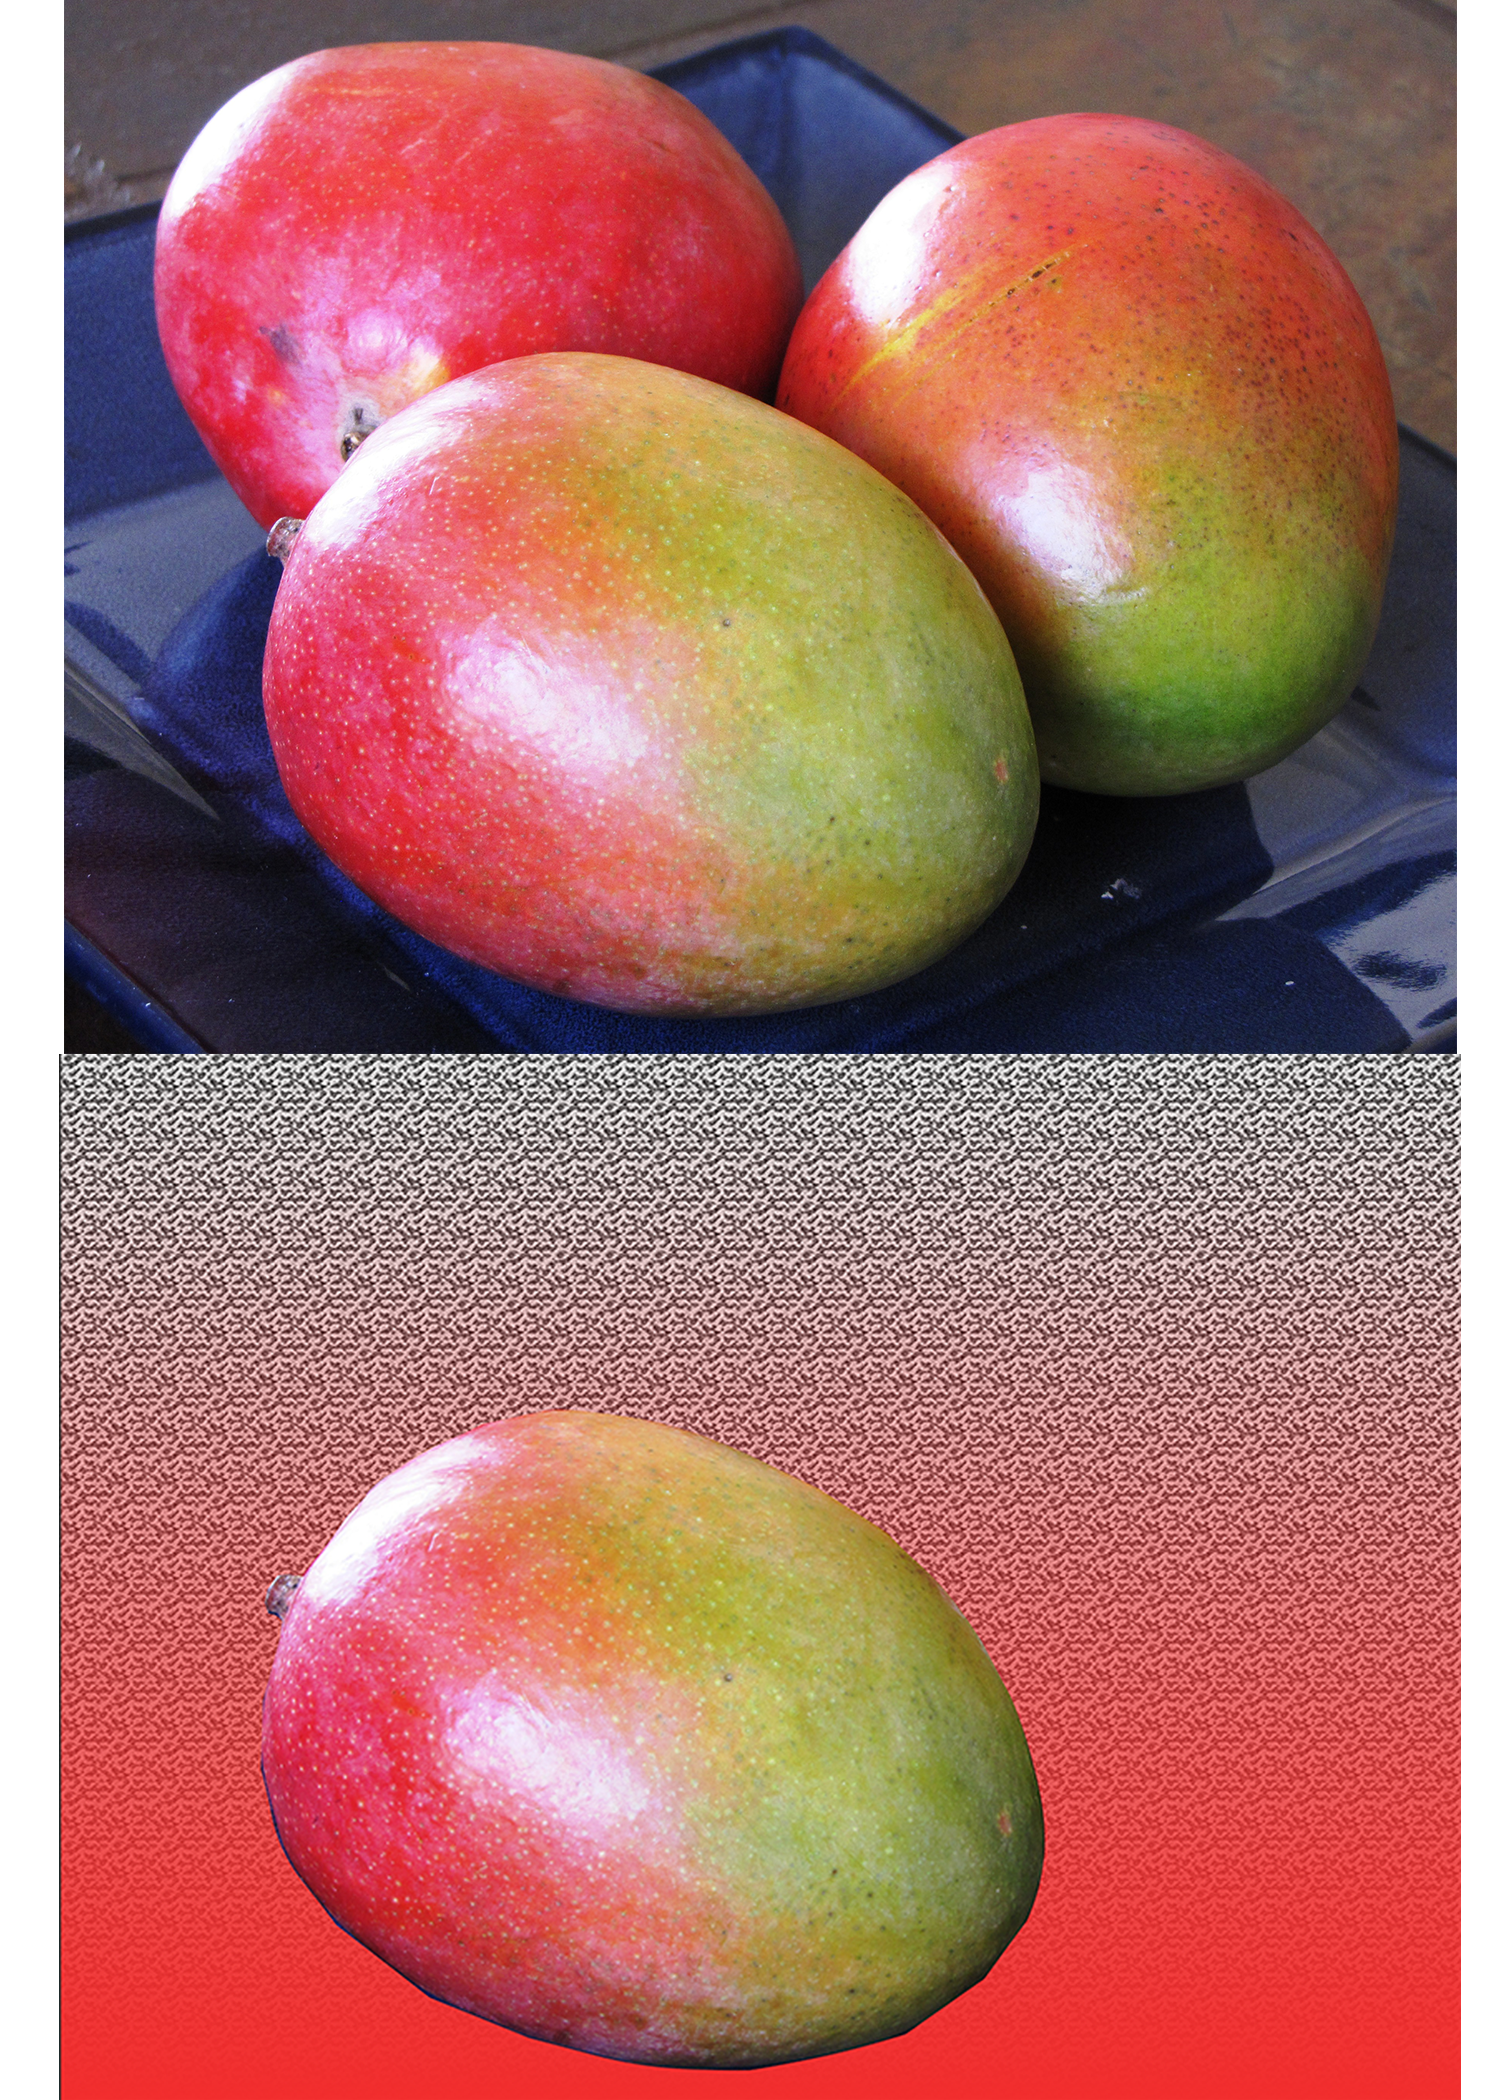 The mango image shows the process in making a selection